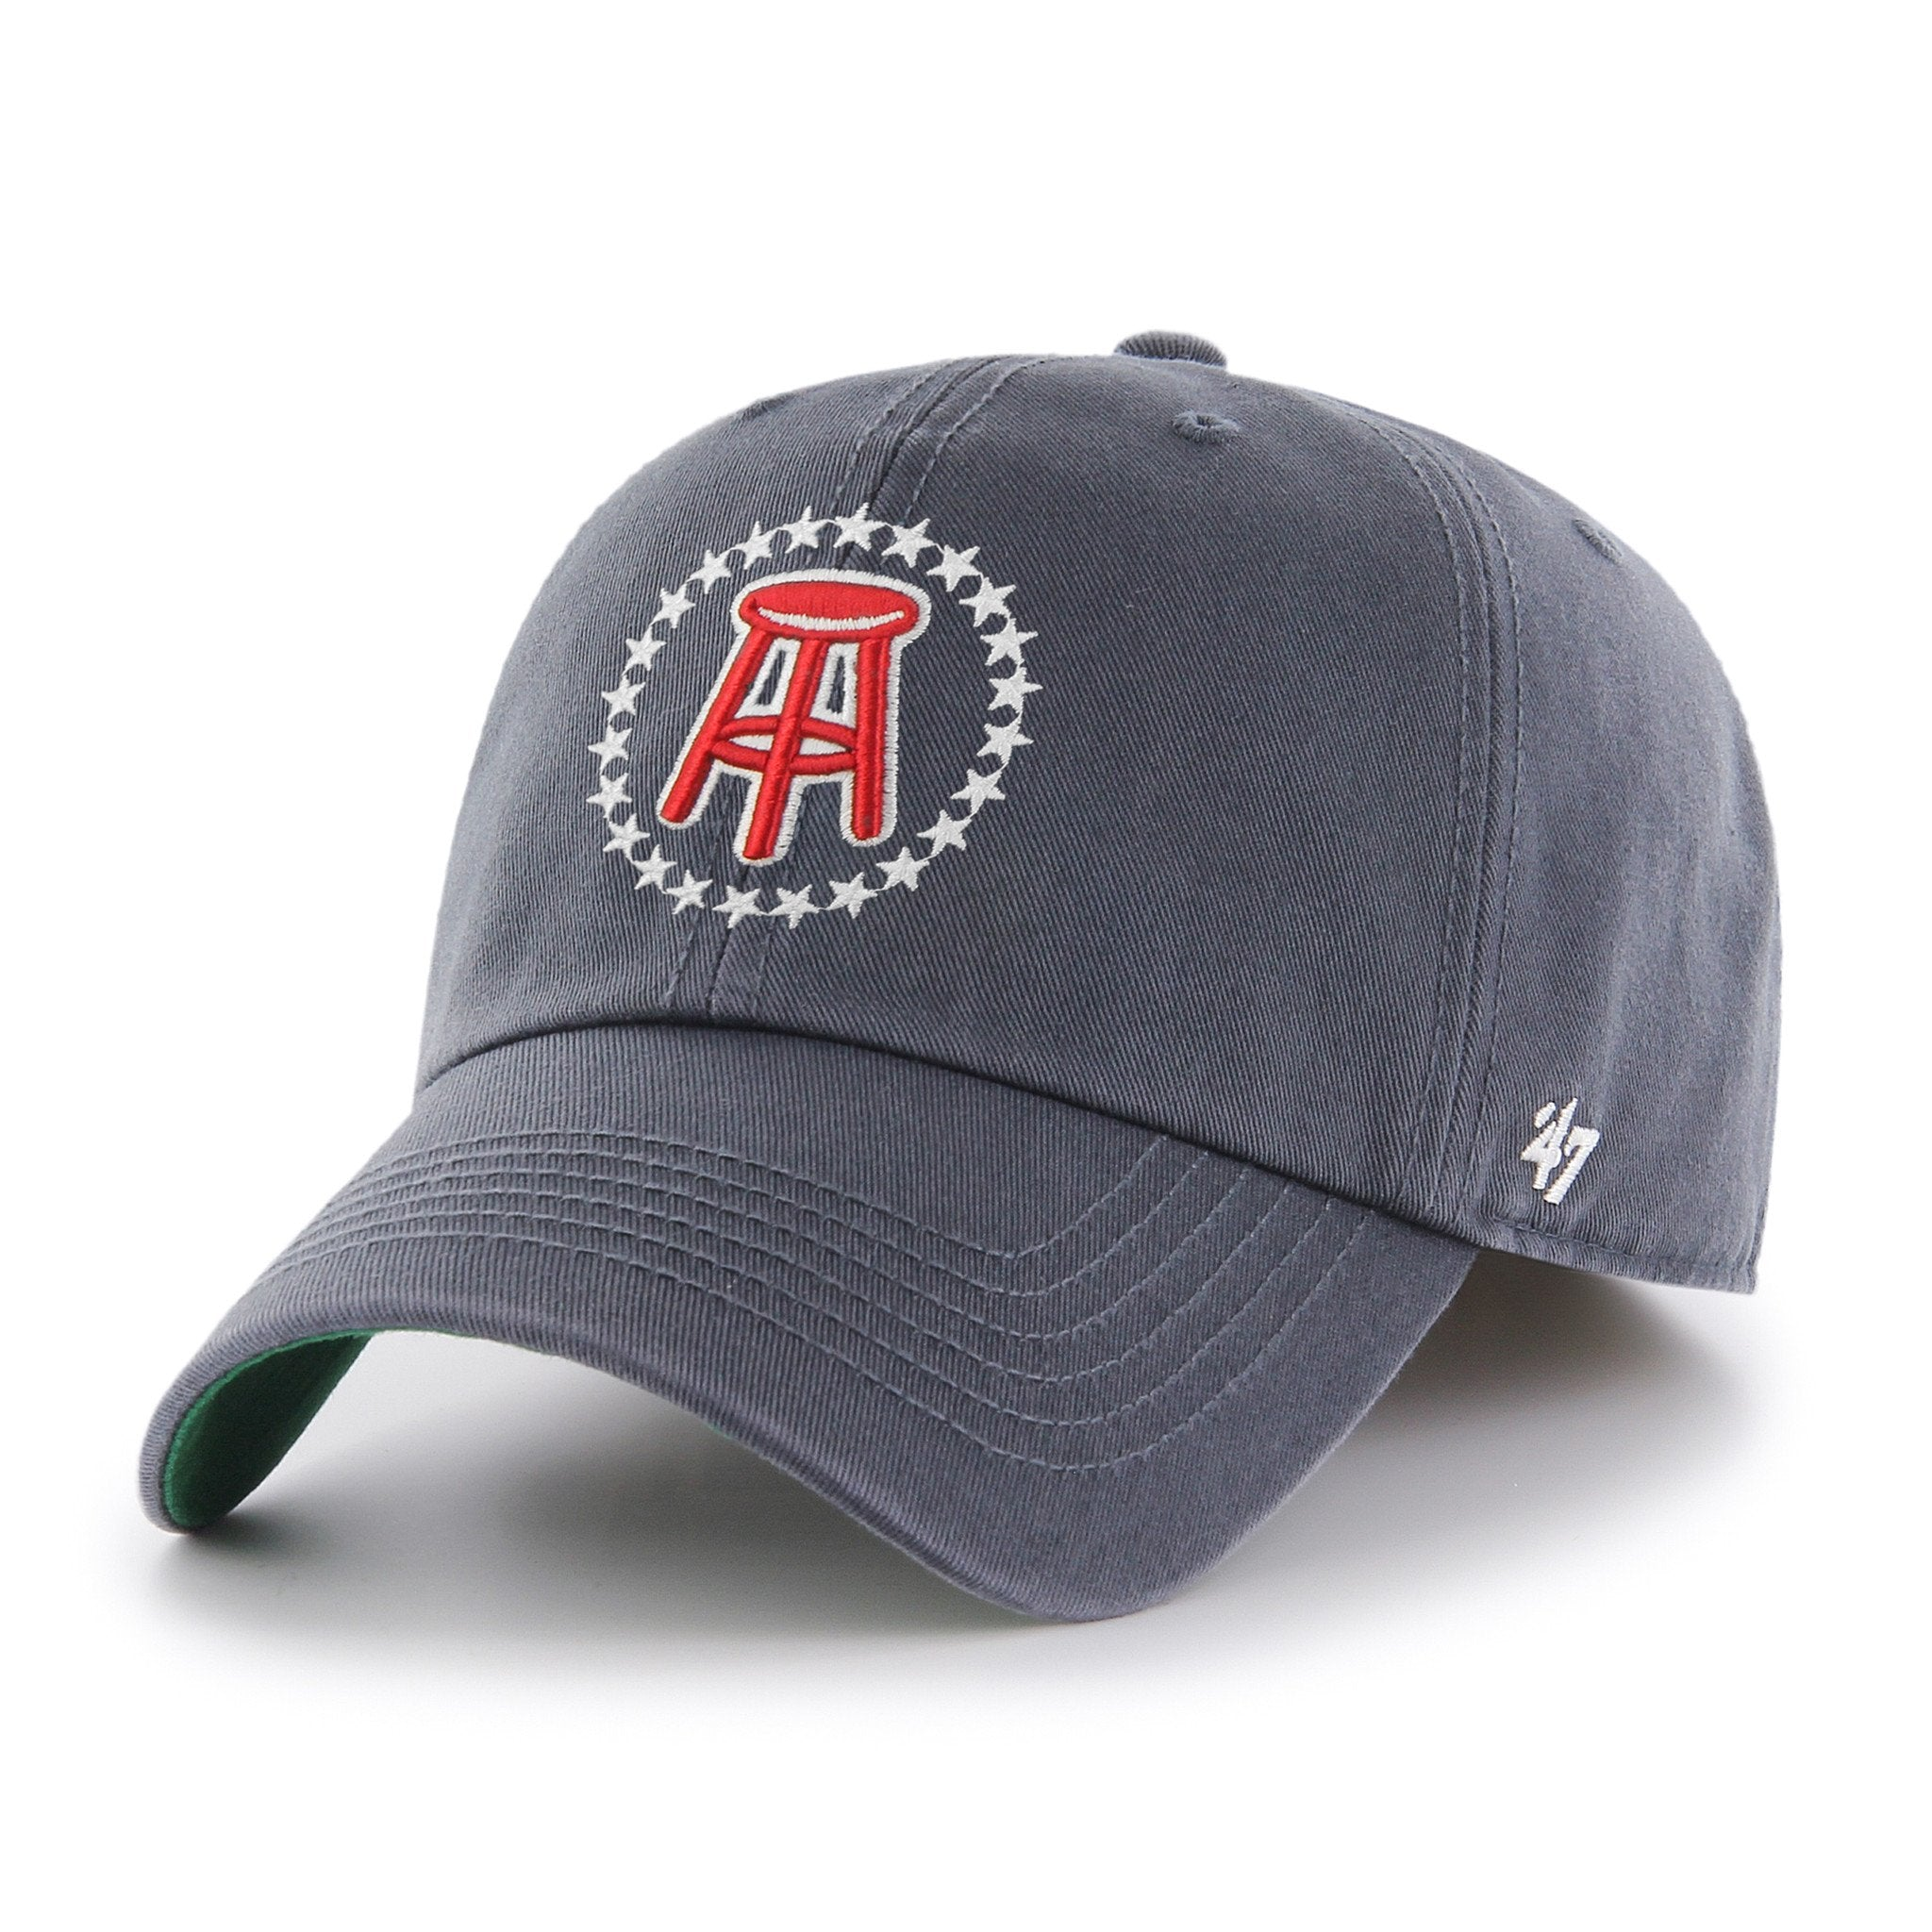 Navy Stool / Star 47 Brand Hat (Fitted)